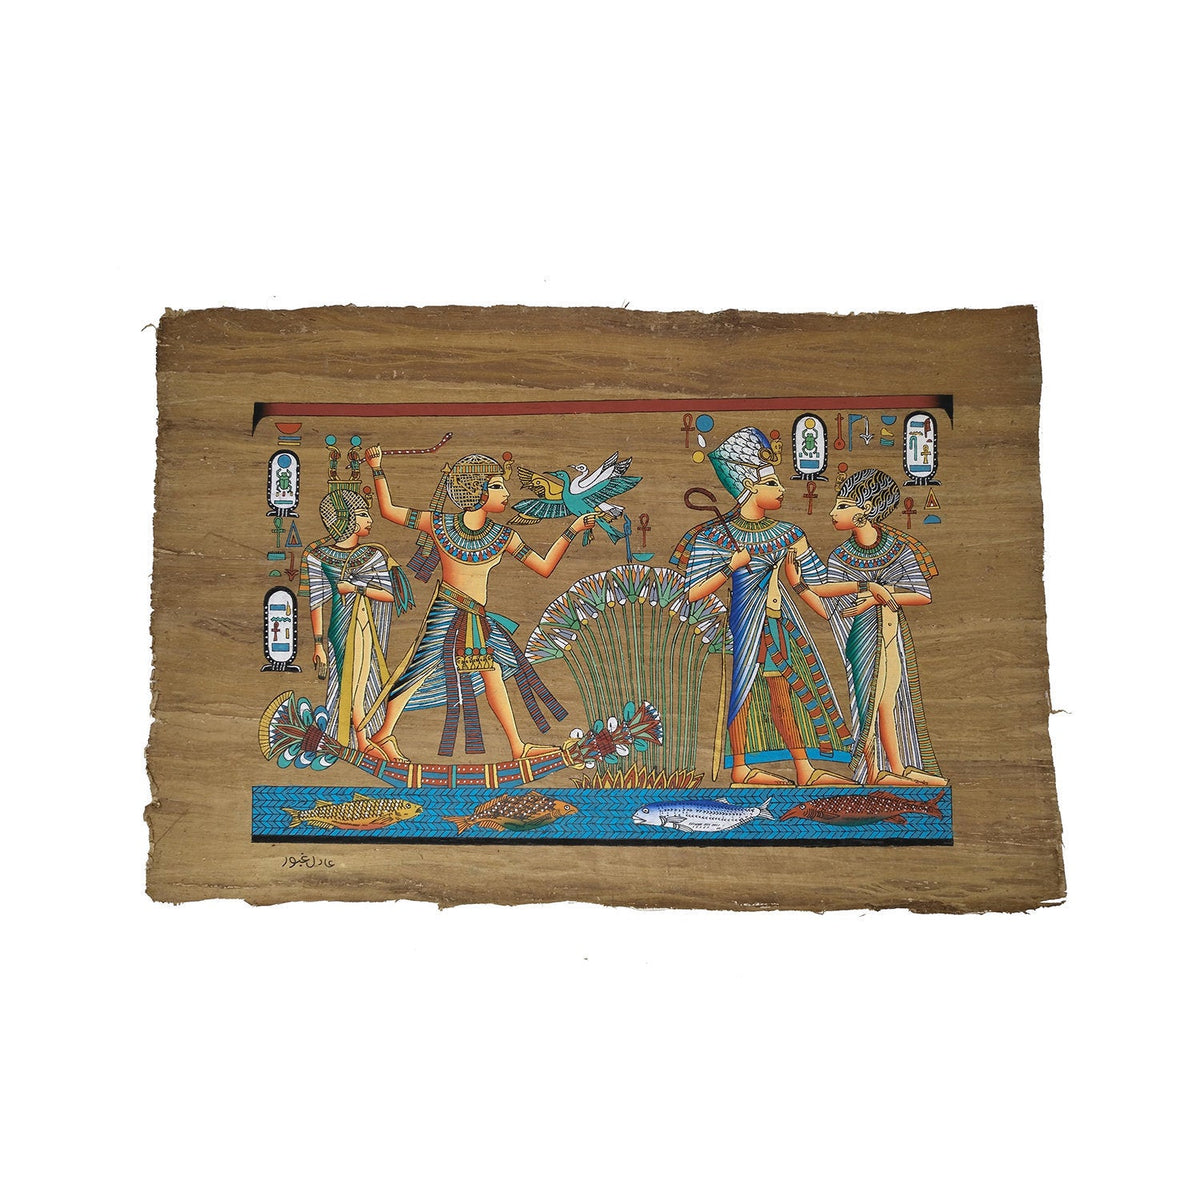 King Tutankamun Fowling on the Nile accompanied by Queen Ankhesenamun - 40x60cm